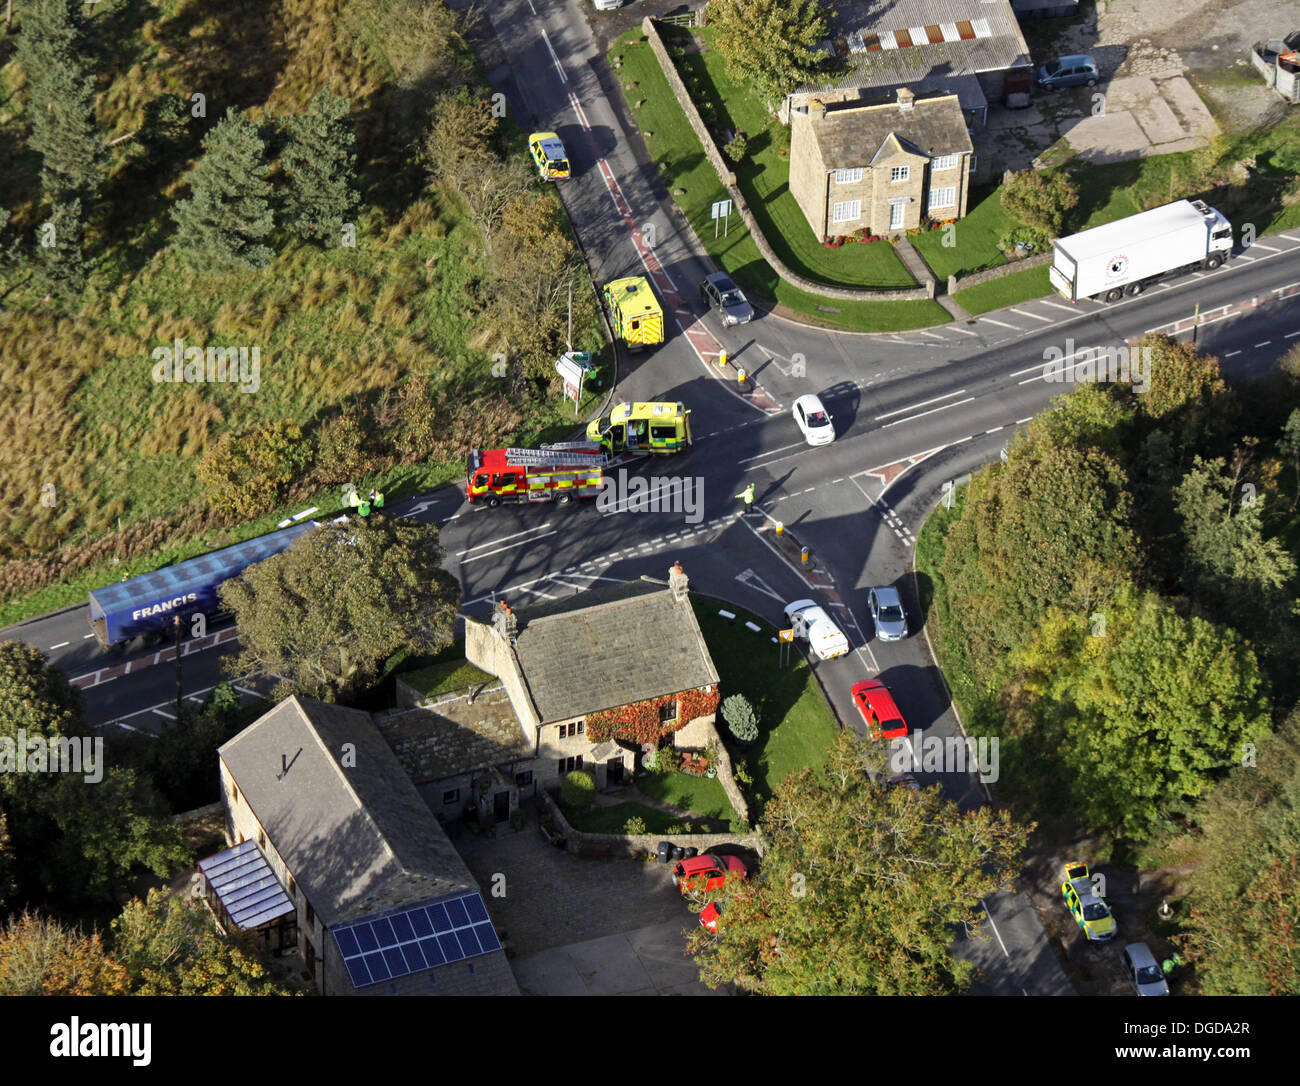 aerial view of the aftermath of a car accident at an accident blackspot in North Yorkshire, UK - Stock Image